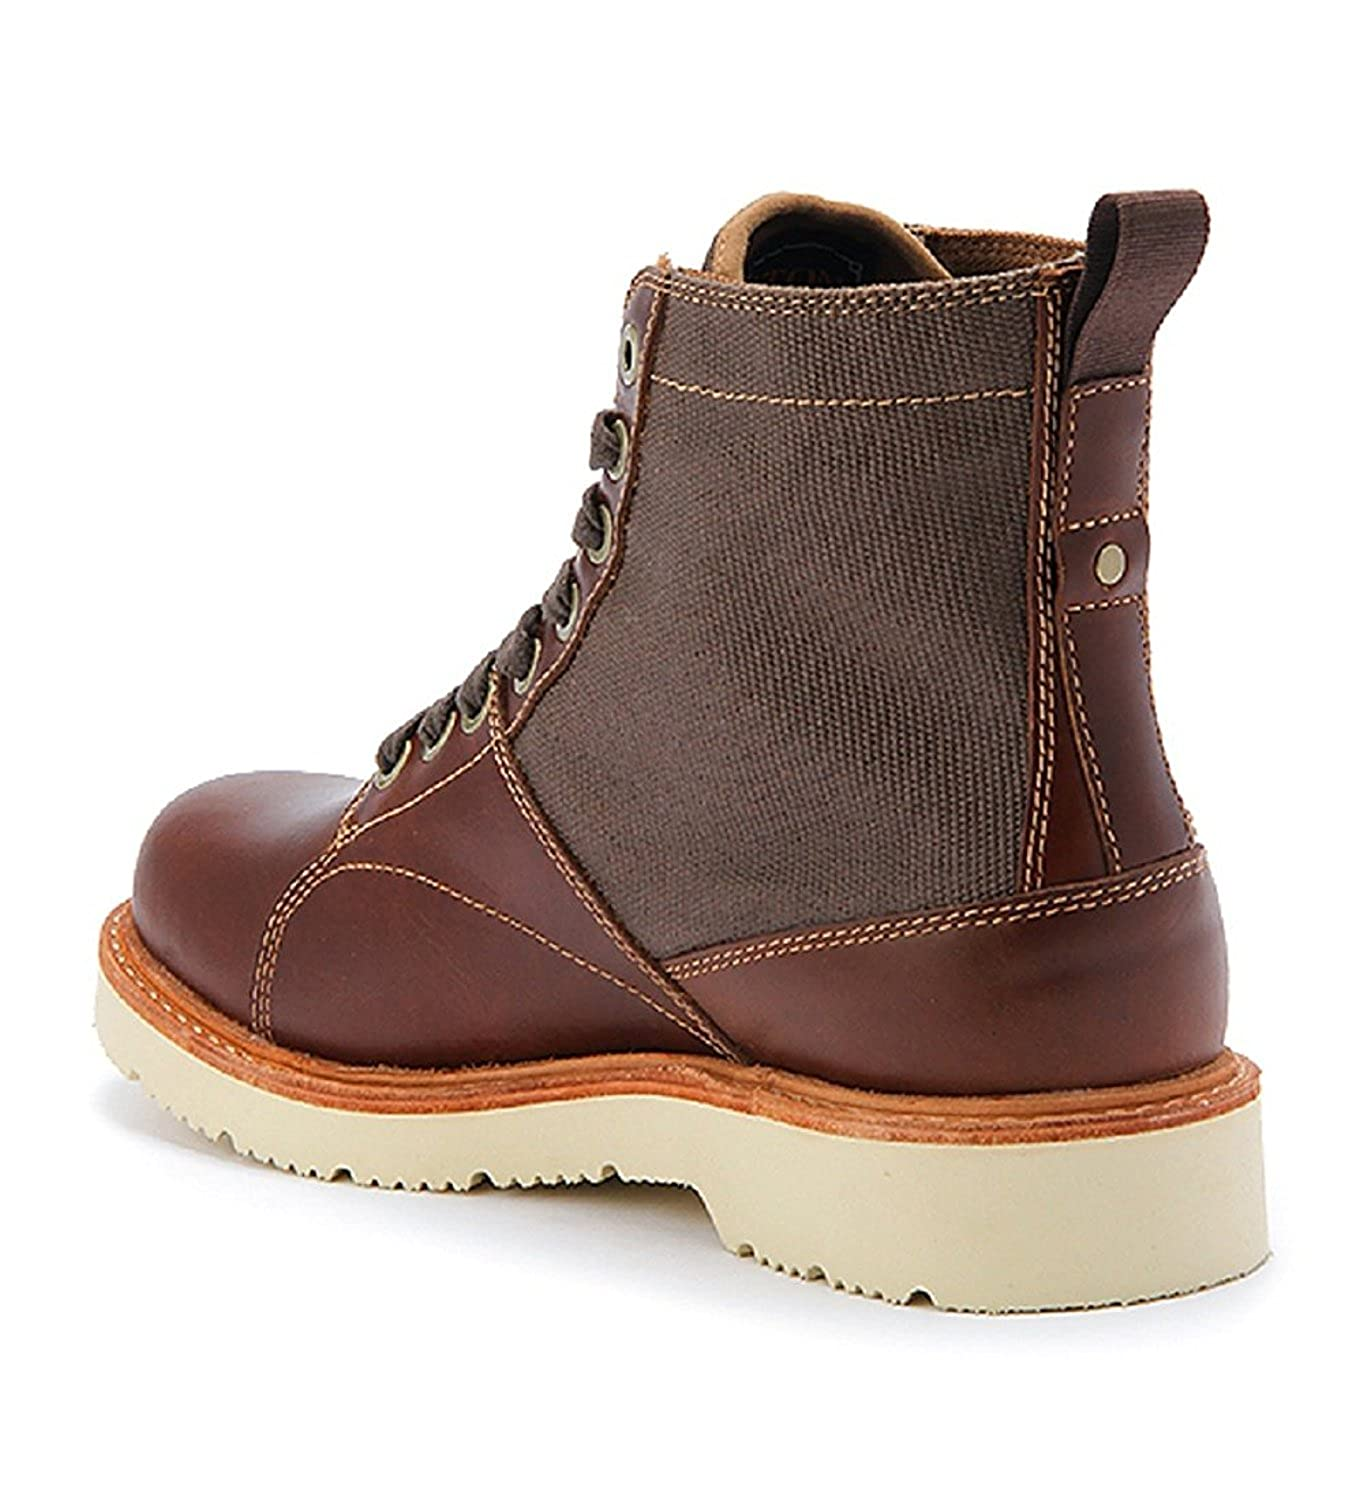 Timberland Men's Abington Chamberlain Boots Style #6340a (7